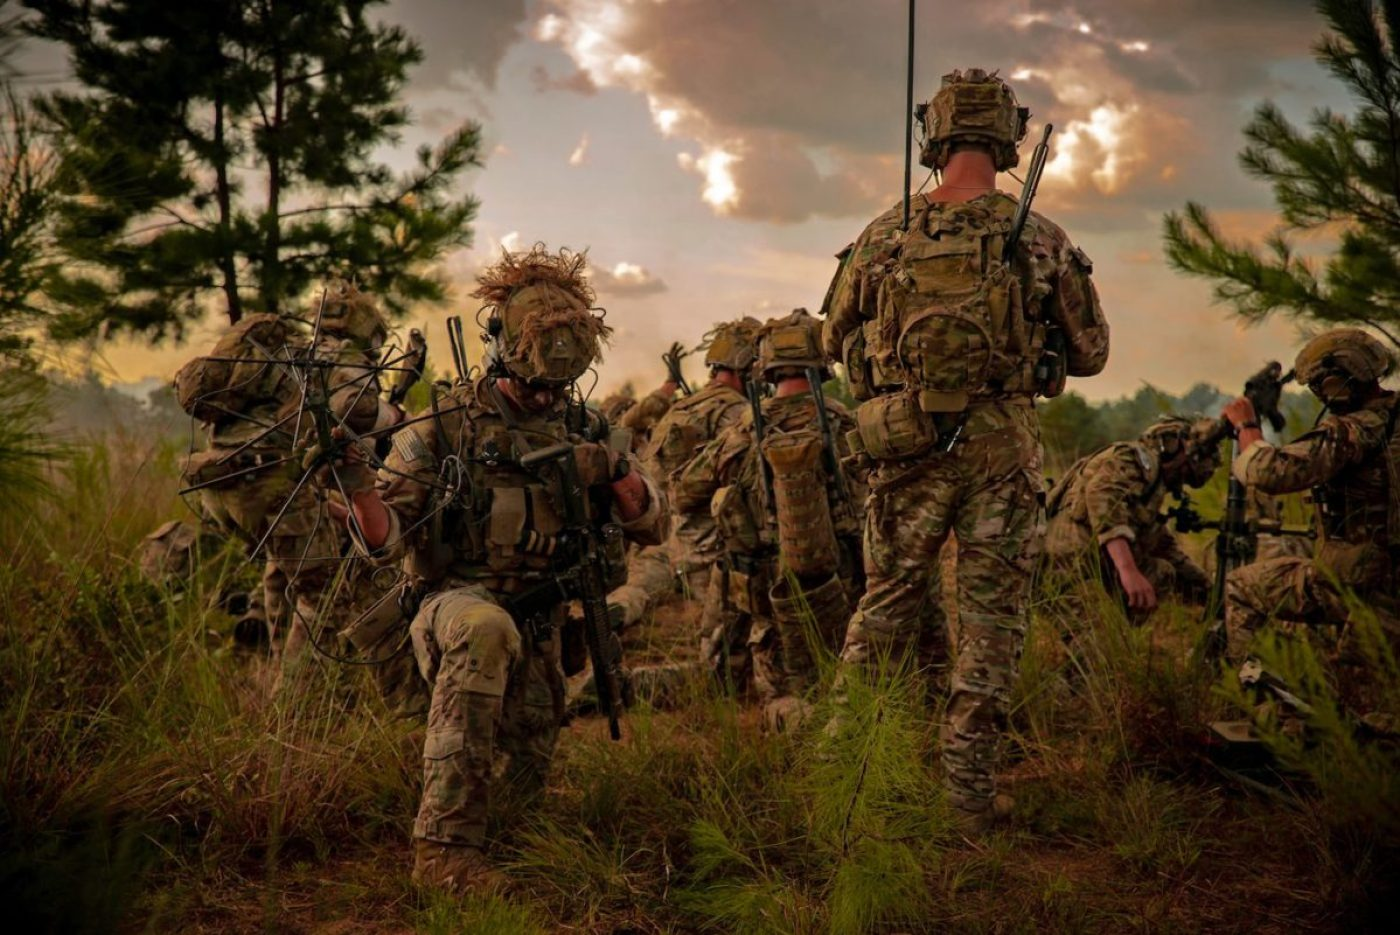 Rangers of the 75th Ranger Regiment set up an indirect fire position during training exercises. (U.S. Army photo)